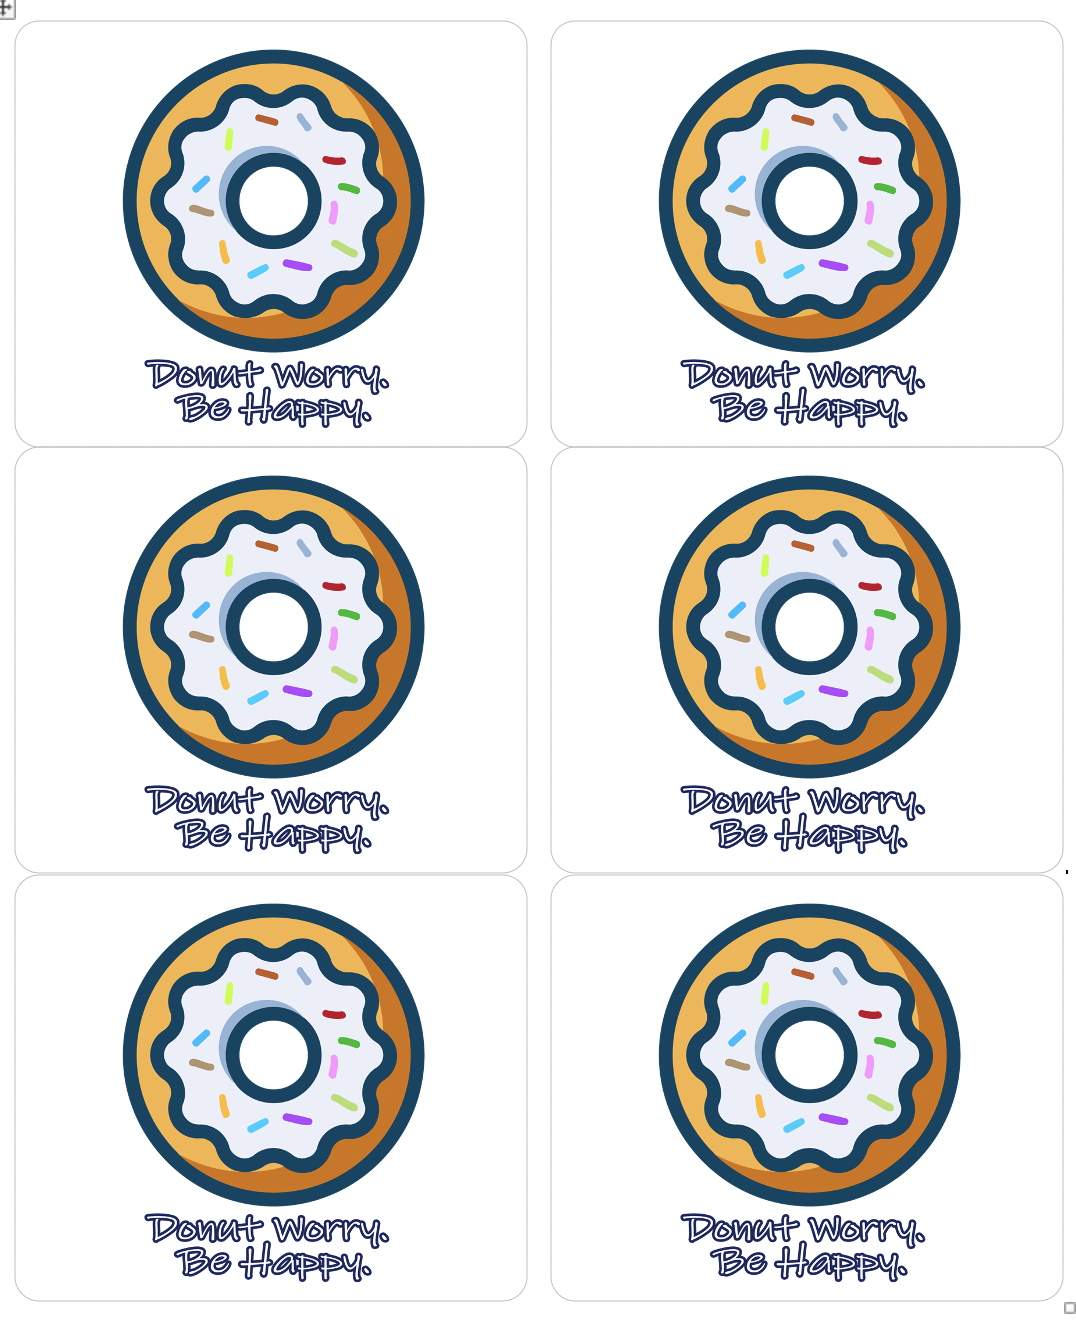 Donut Worry, Be Happy Stickers